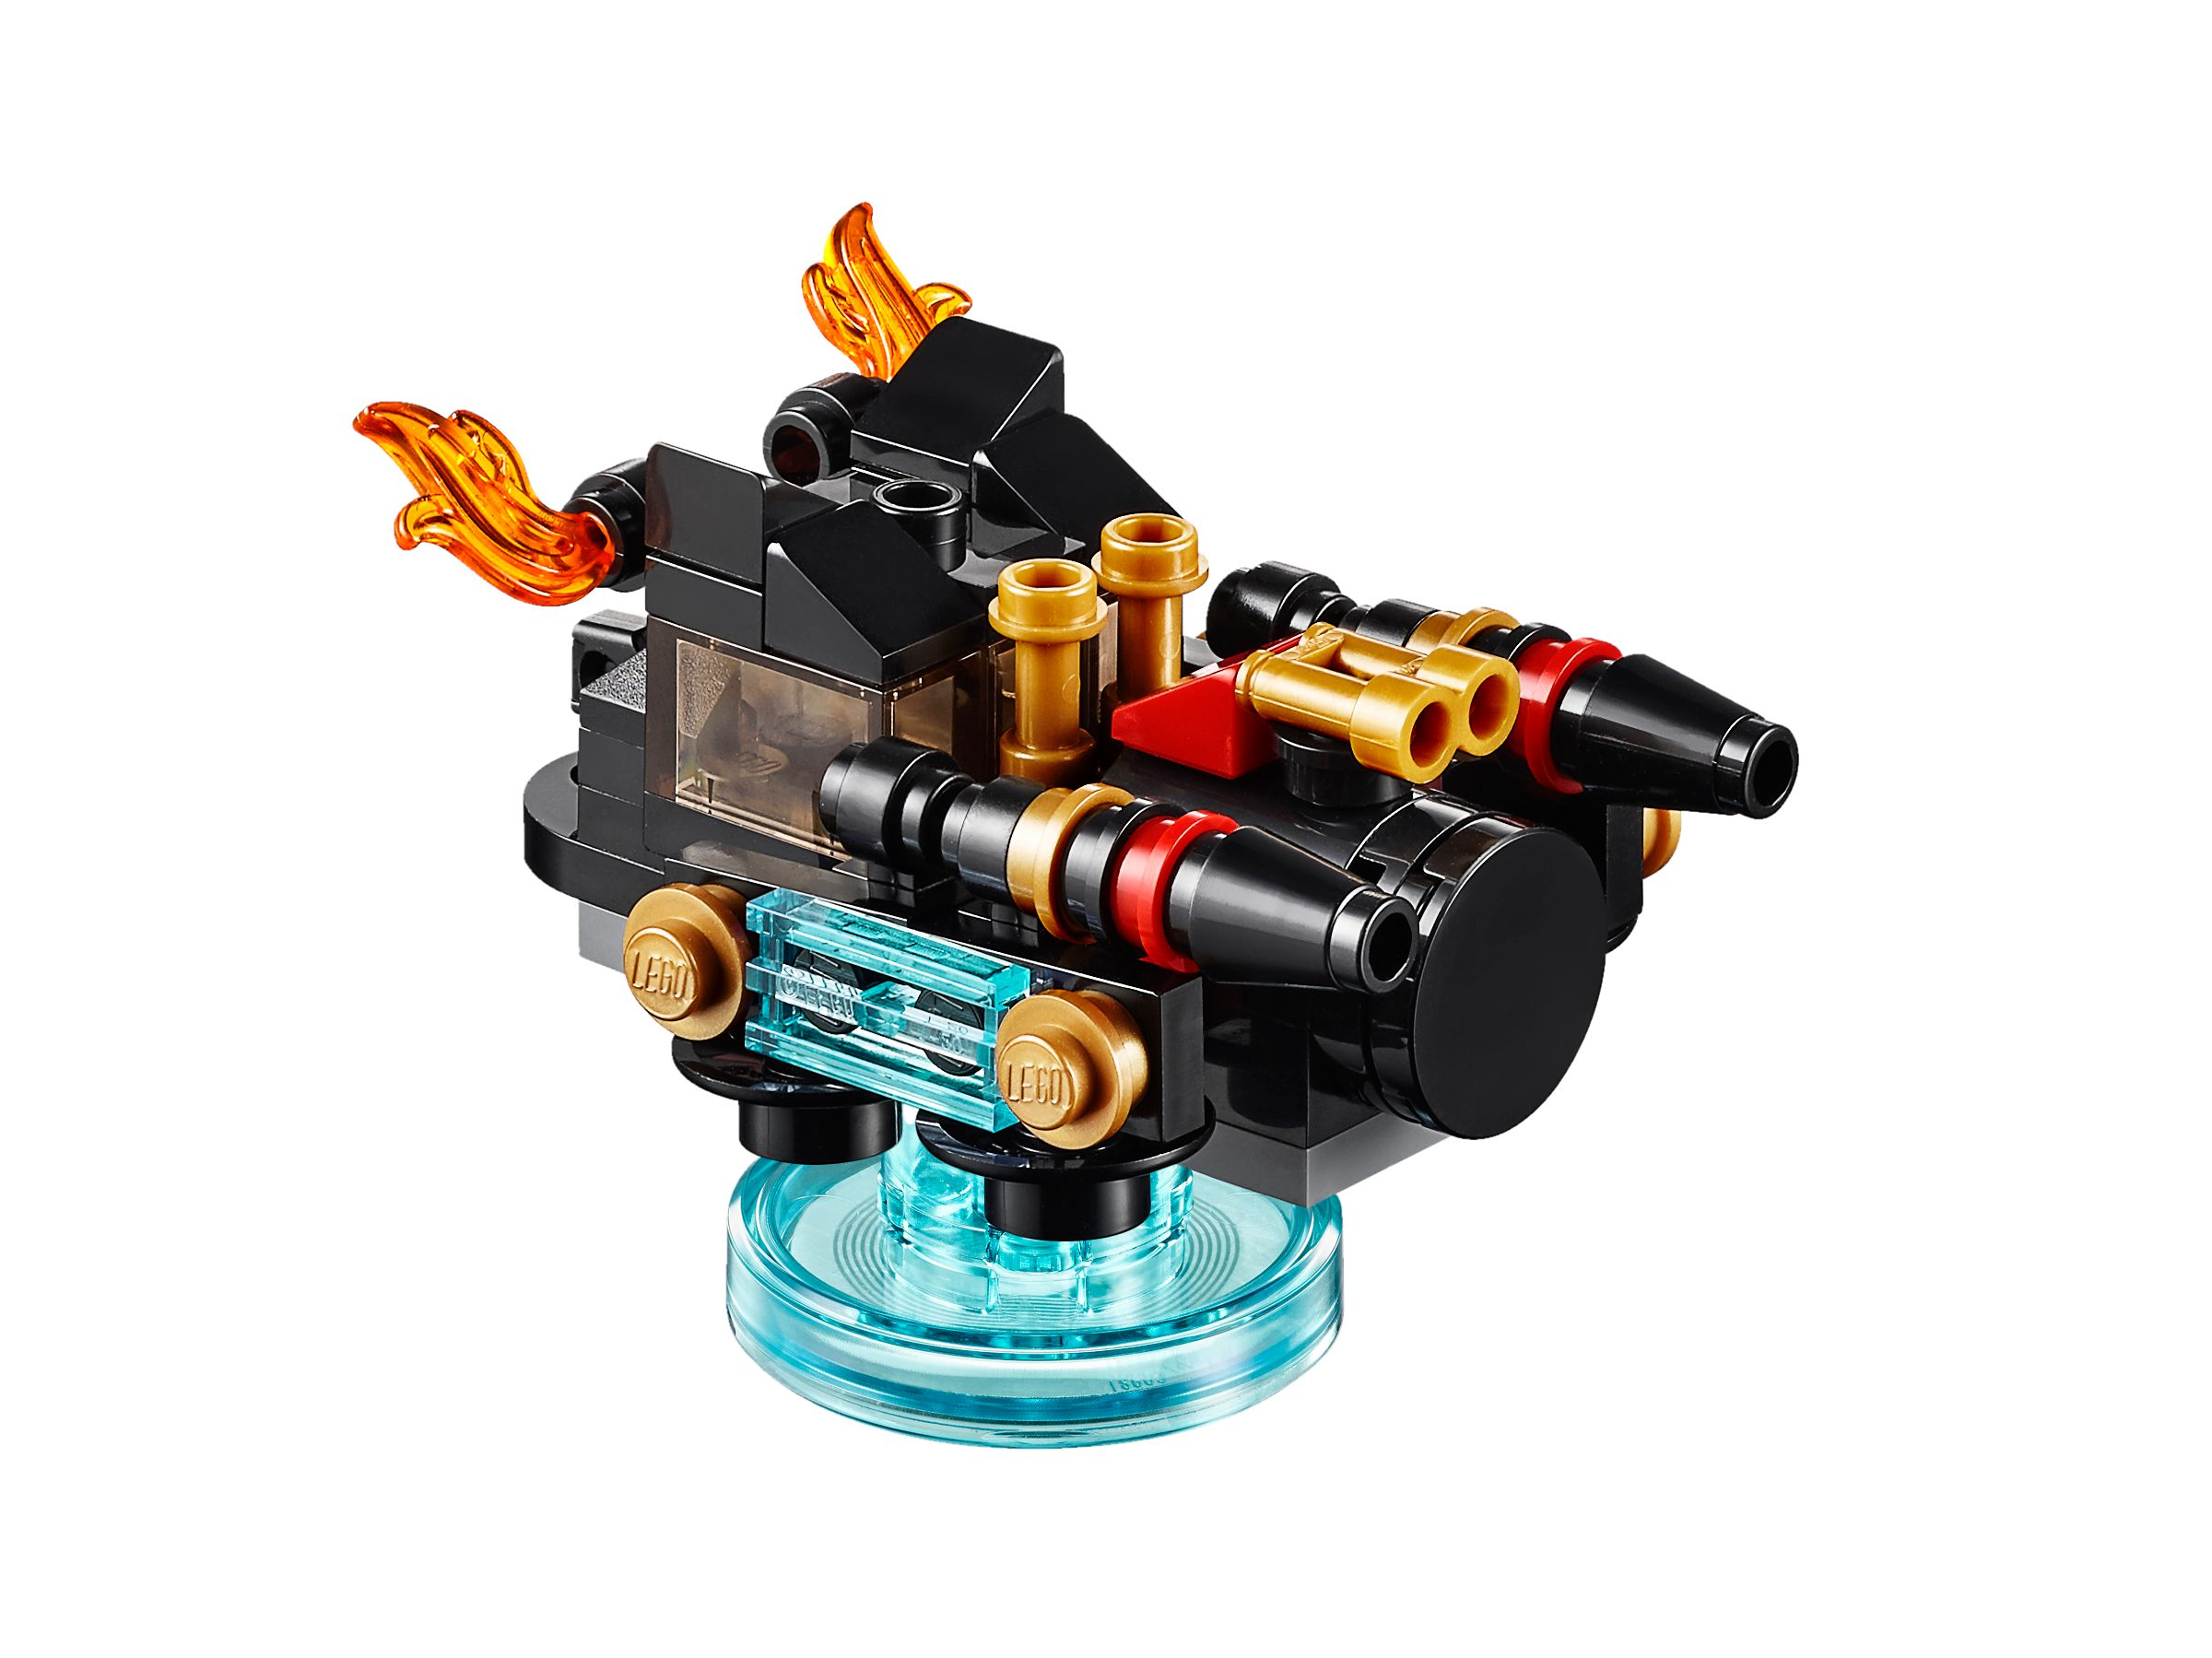 LEGO Dimensions 71230 Fun Pack Doc Brown LEGO_71230_alt4.jpg